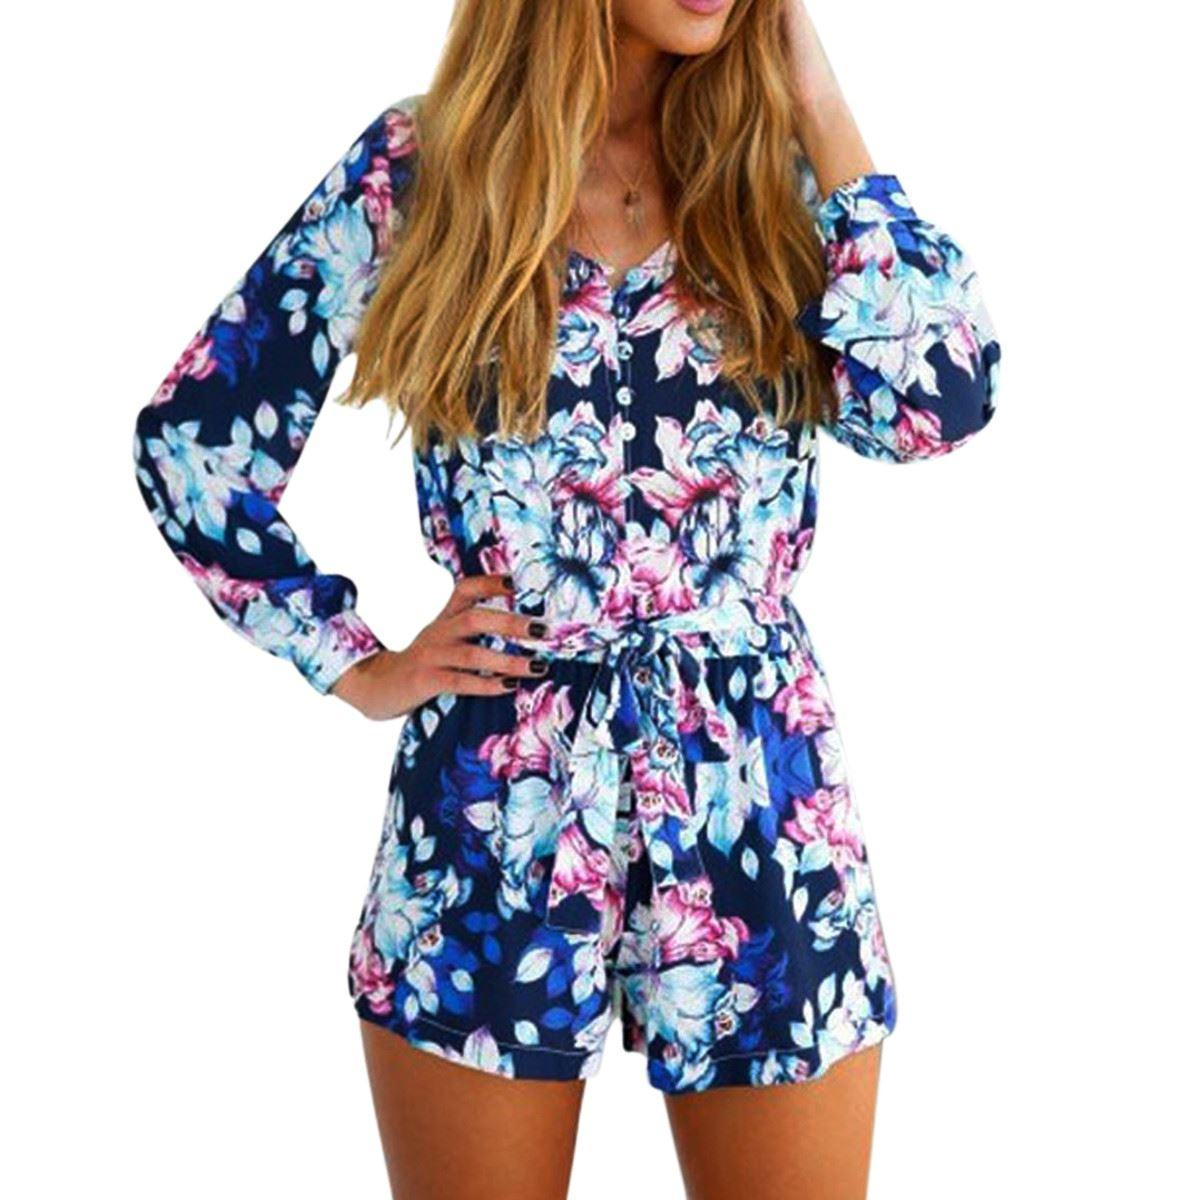 8965f54821cd 2015 Autumn Rompers Womens Long Sleeve Playsuit Floral Printed ...